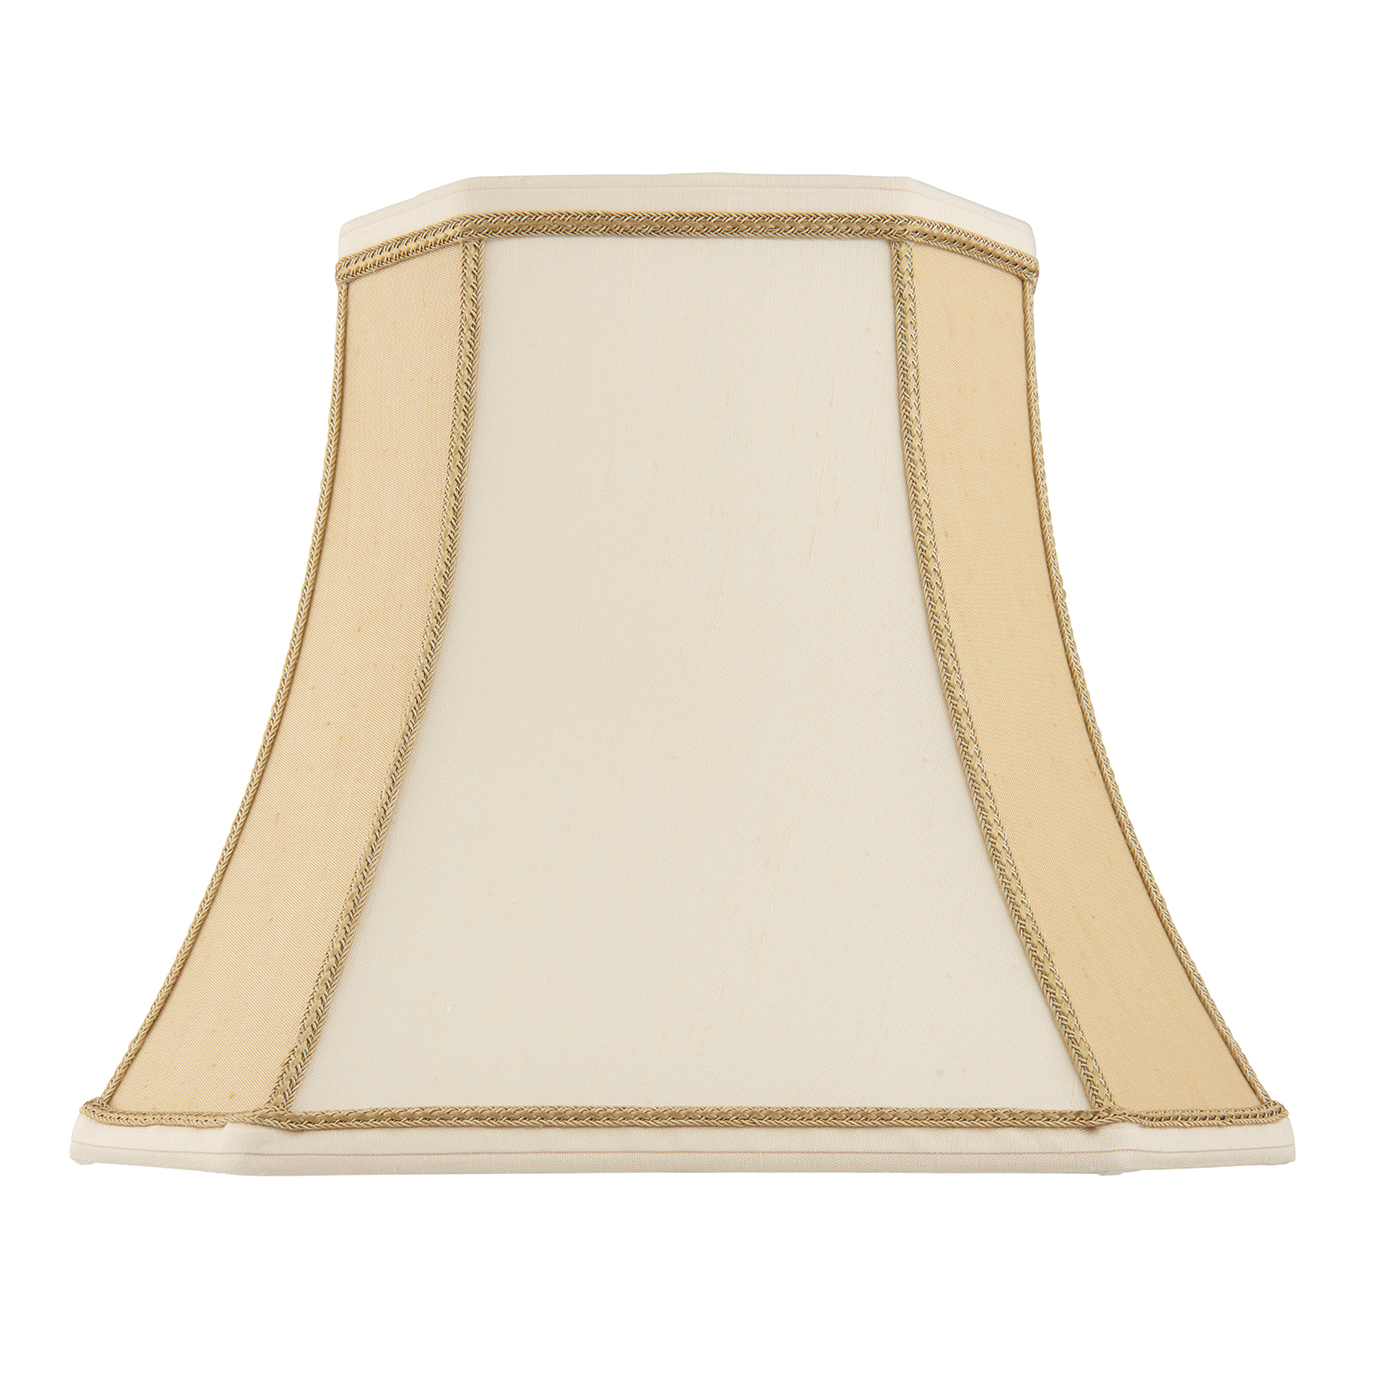 Endon Camilla lampshade 10 inch Two-tone cream faux silk 225mm H x 255mm D max.